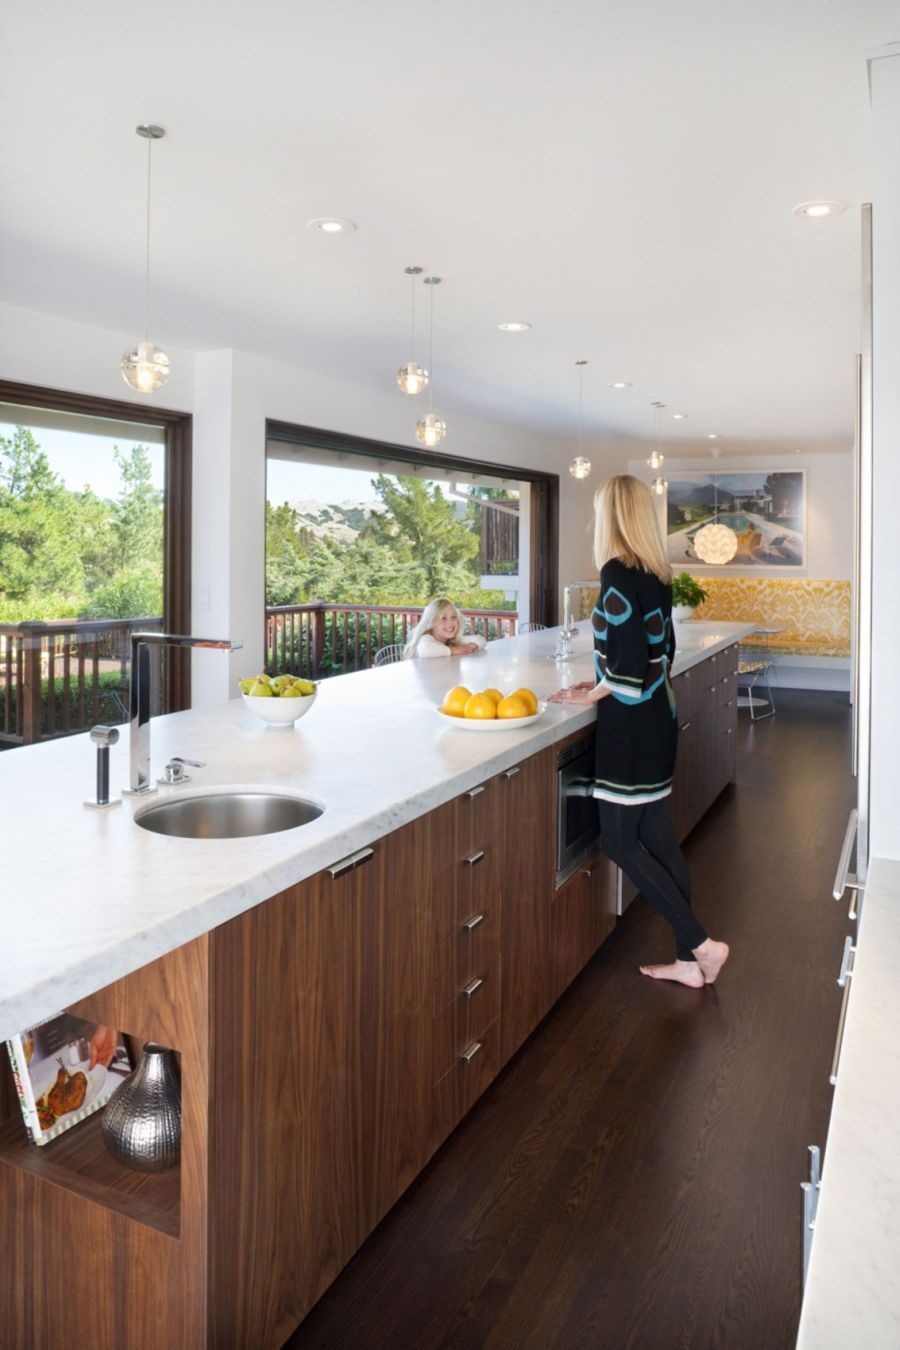 Kitchen Island With Stools Ideas Remodeled Kitchen And Breezy Interiors Light Up The Moraga